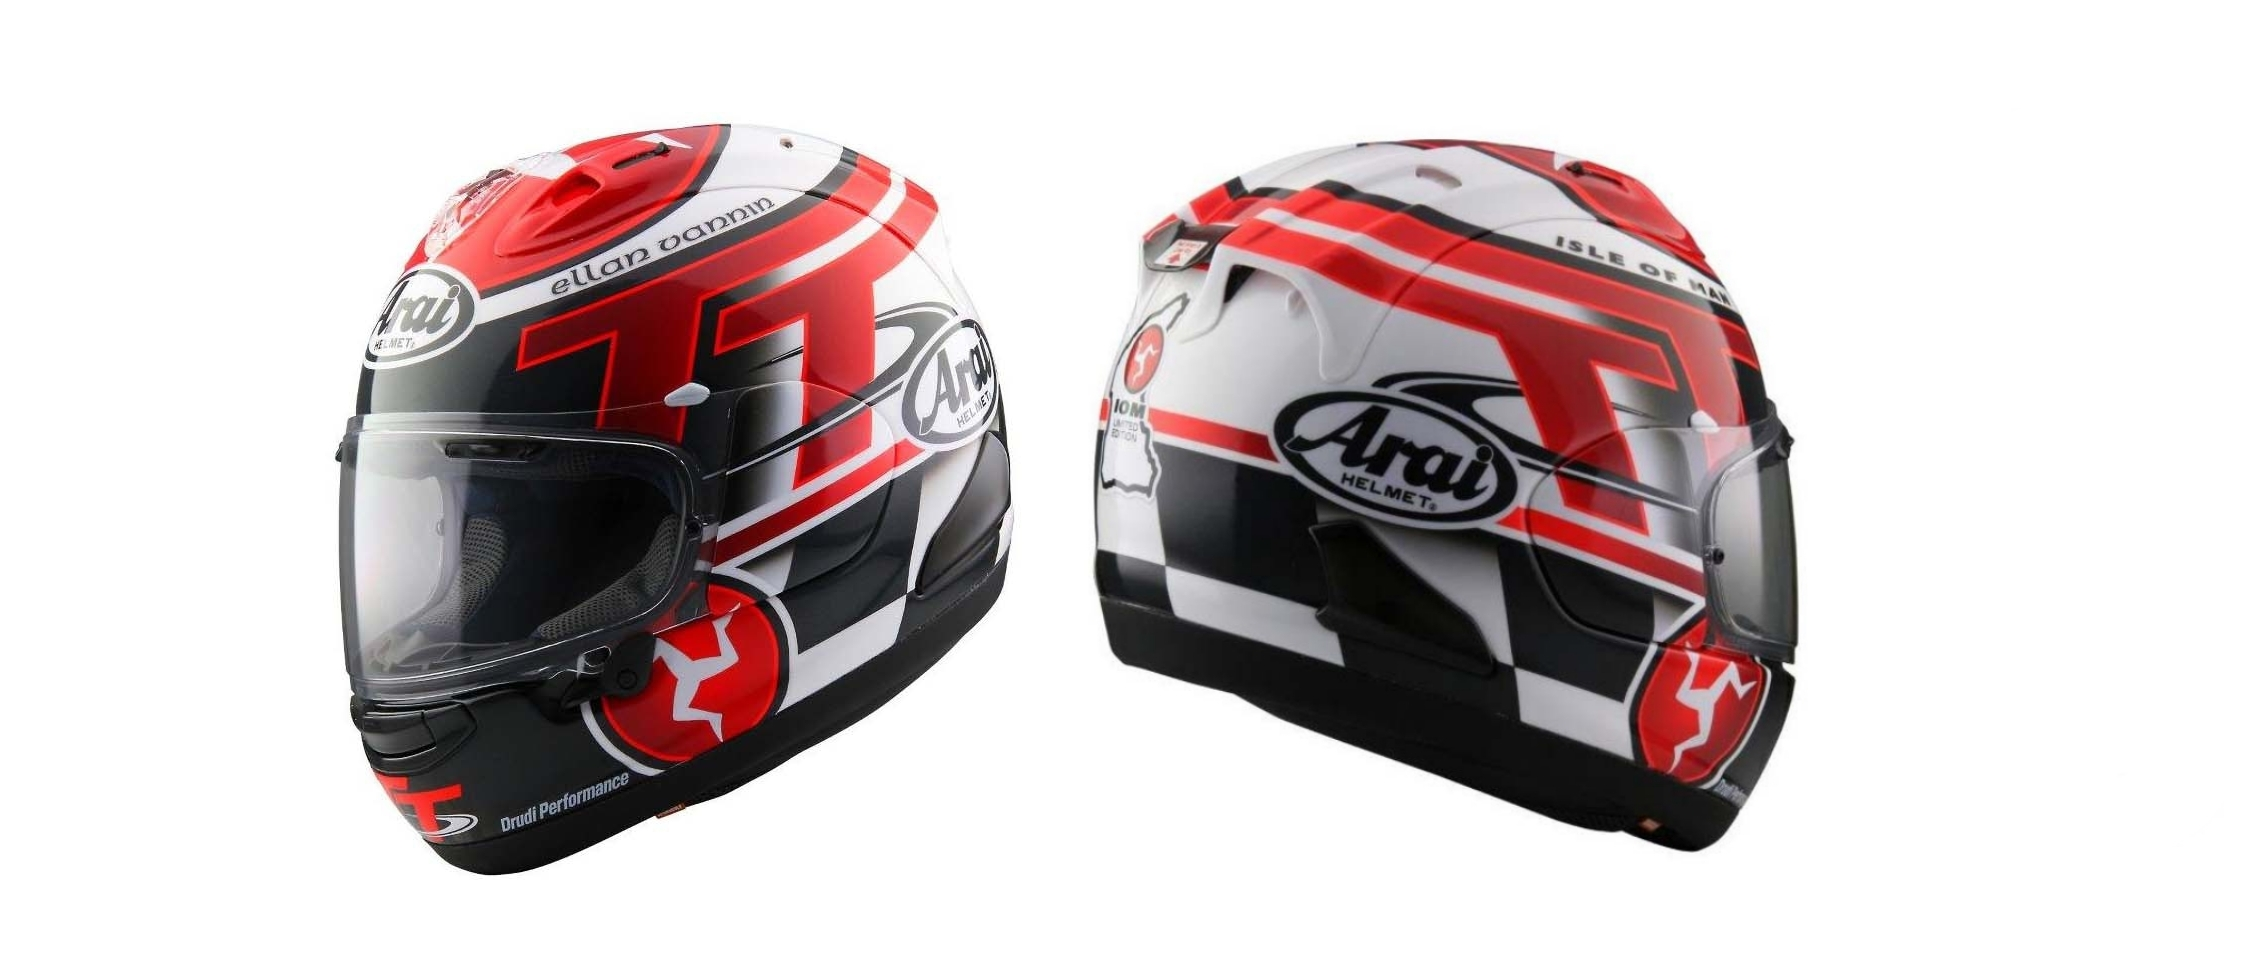 6a812f5a 2016 Isle of Man TT Limited Edition Helmet Breaks Cover - autoevolution